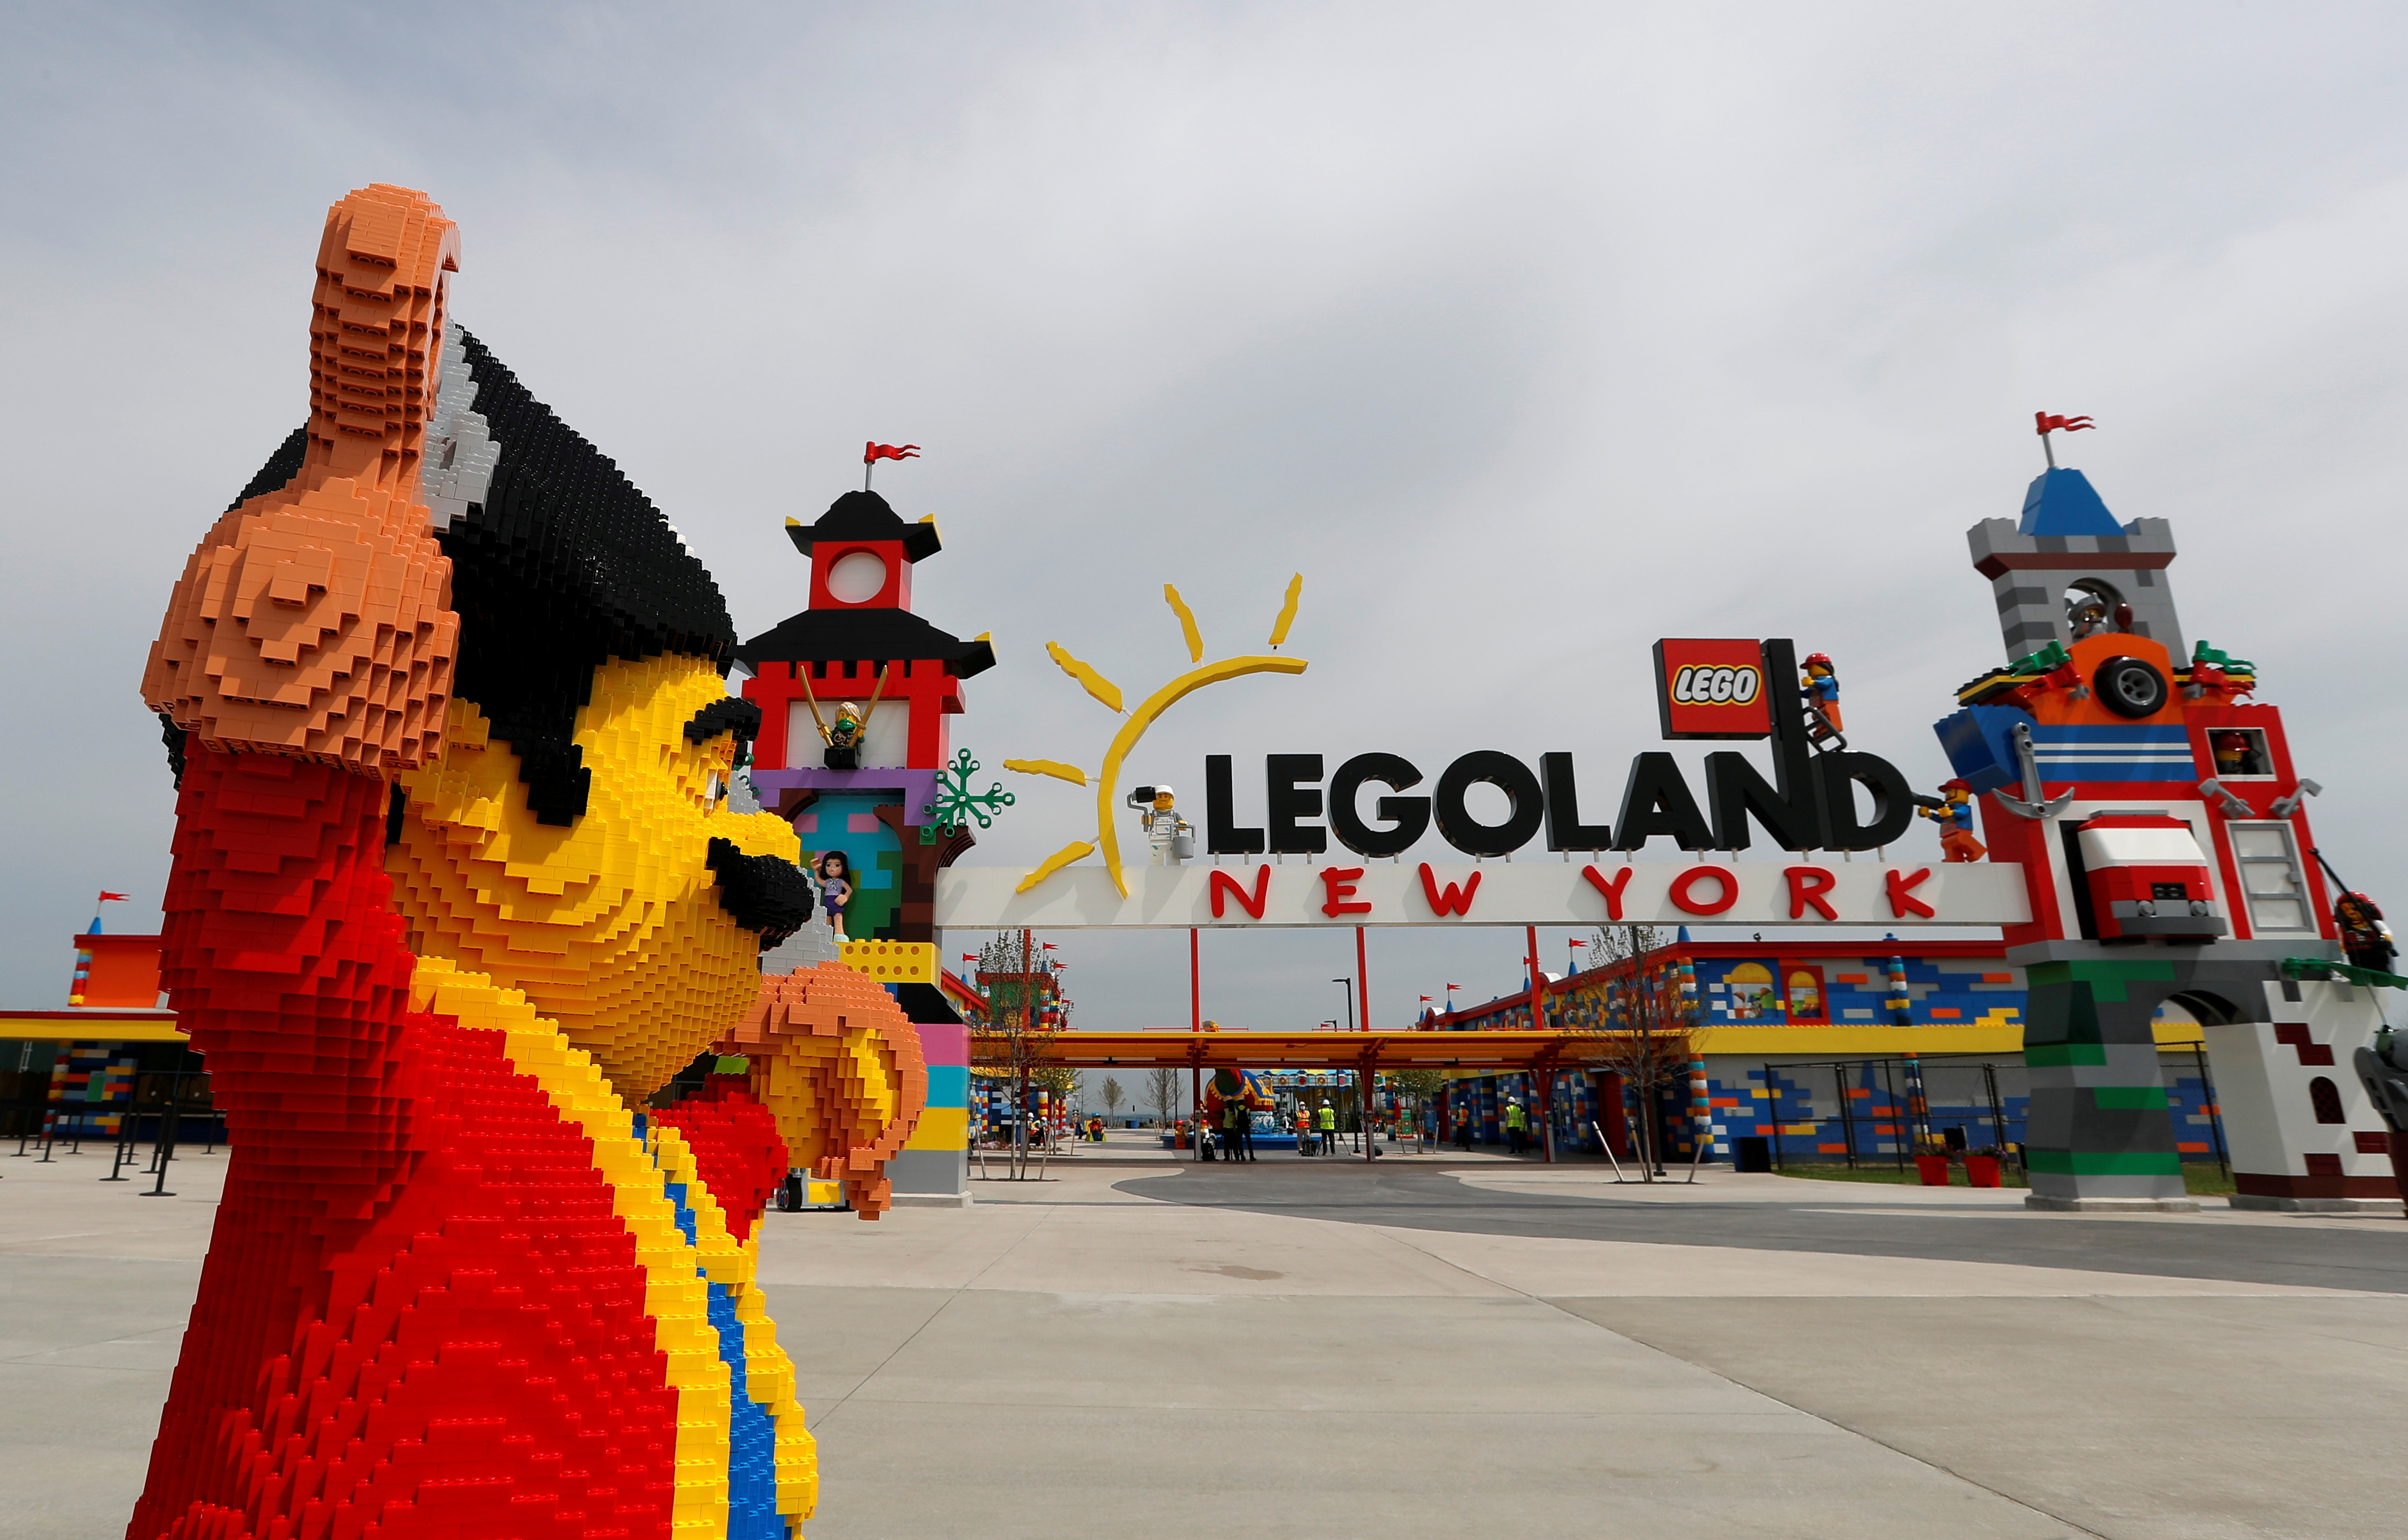 A Lego Pirate figure is pictured outside the main entrance gate to the new Legoland New York Resort theme park during a press preview of the park, which is currently under construction, with plans to open to the public in the summer of 2021 in Goshen, New York, U.S., April 28, 2021. REUTERS/Mike Segar